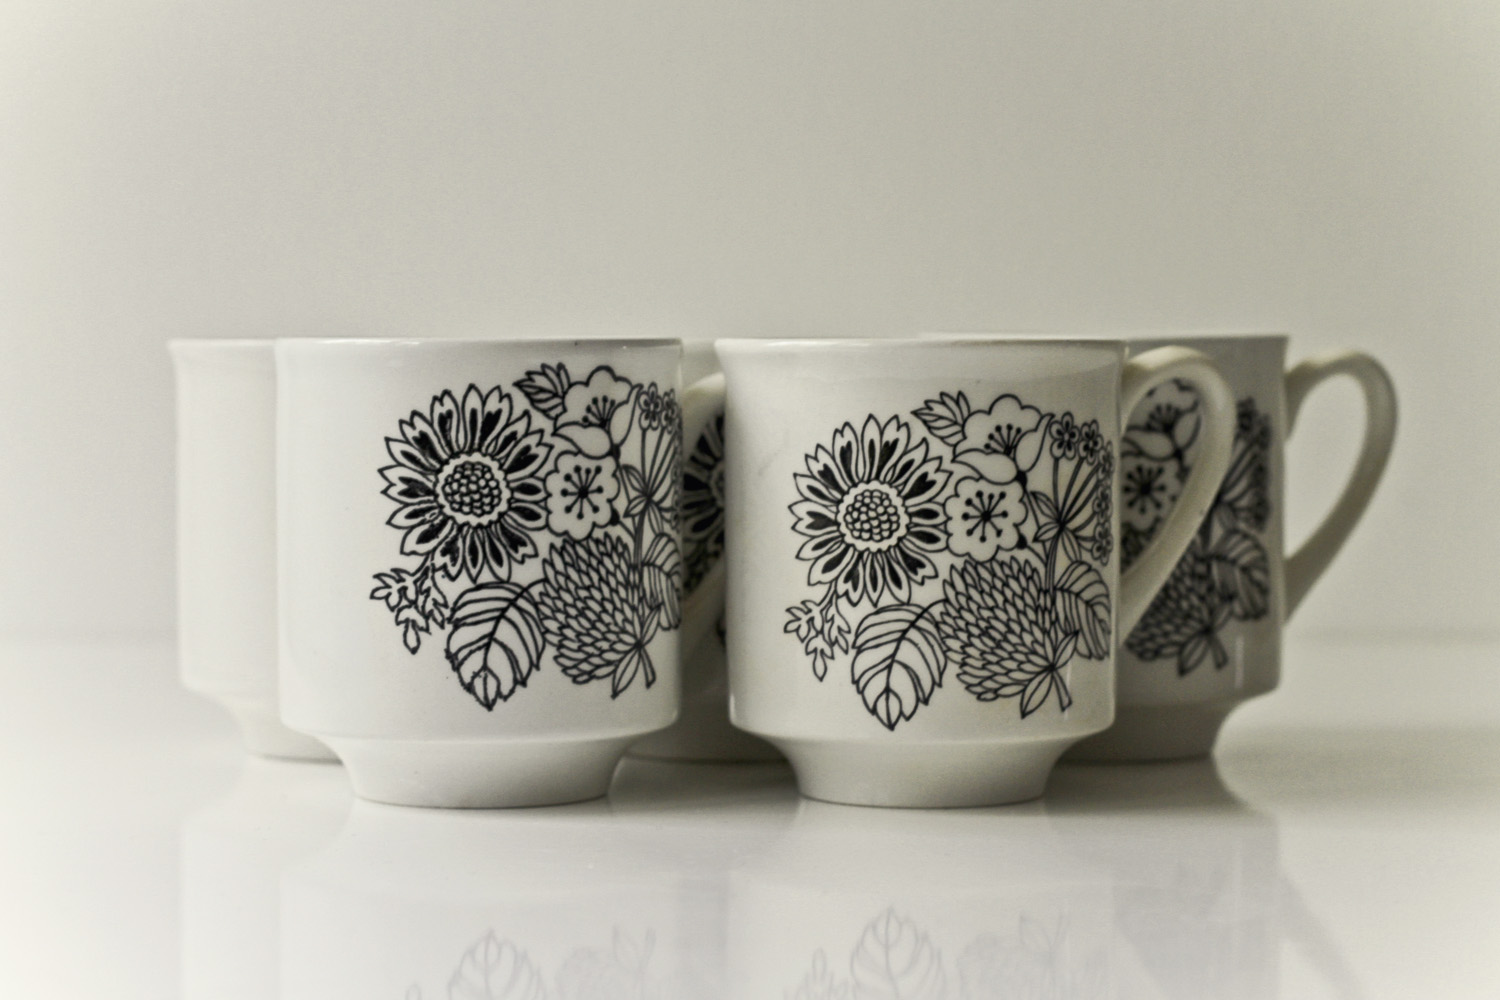 Thrift Store Finds: Mug Love// Thrifted